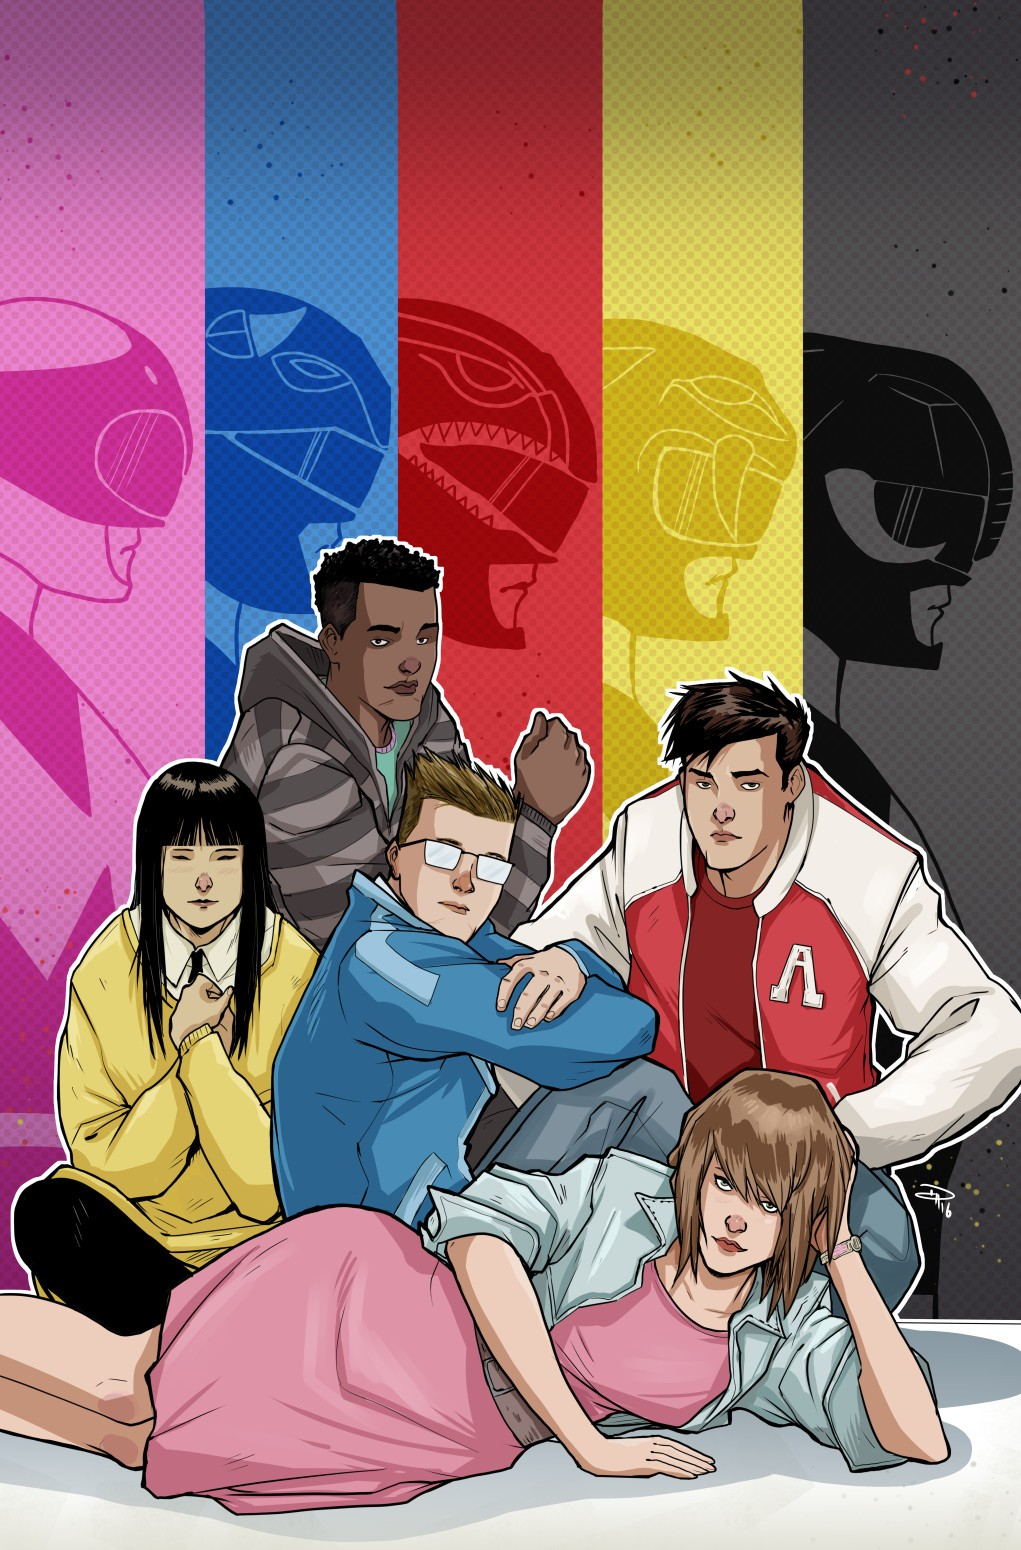 It S Morphin Time With These Power Rangers Wallpapers Aivanet